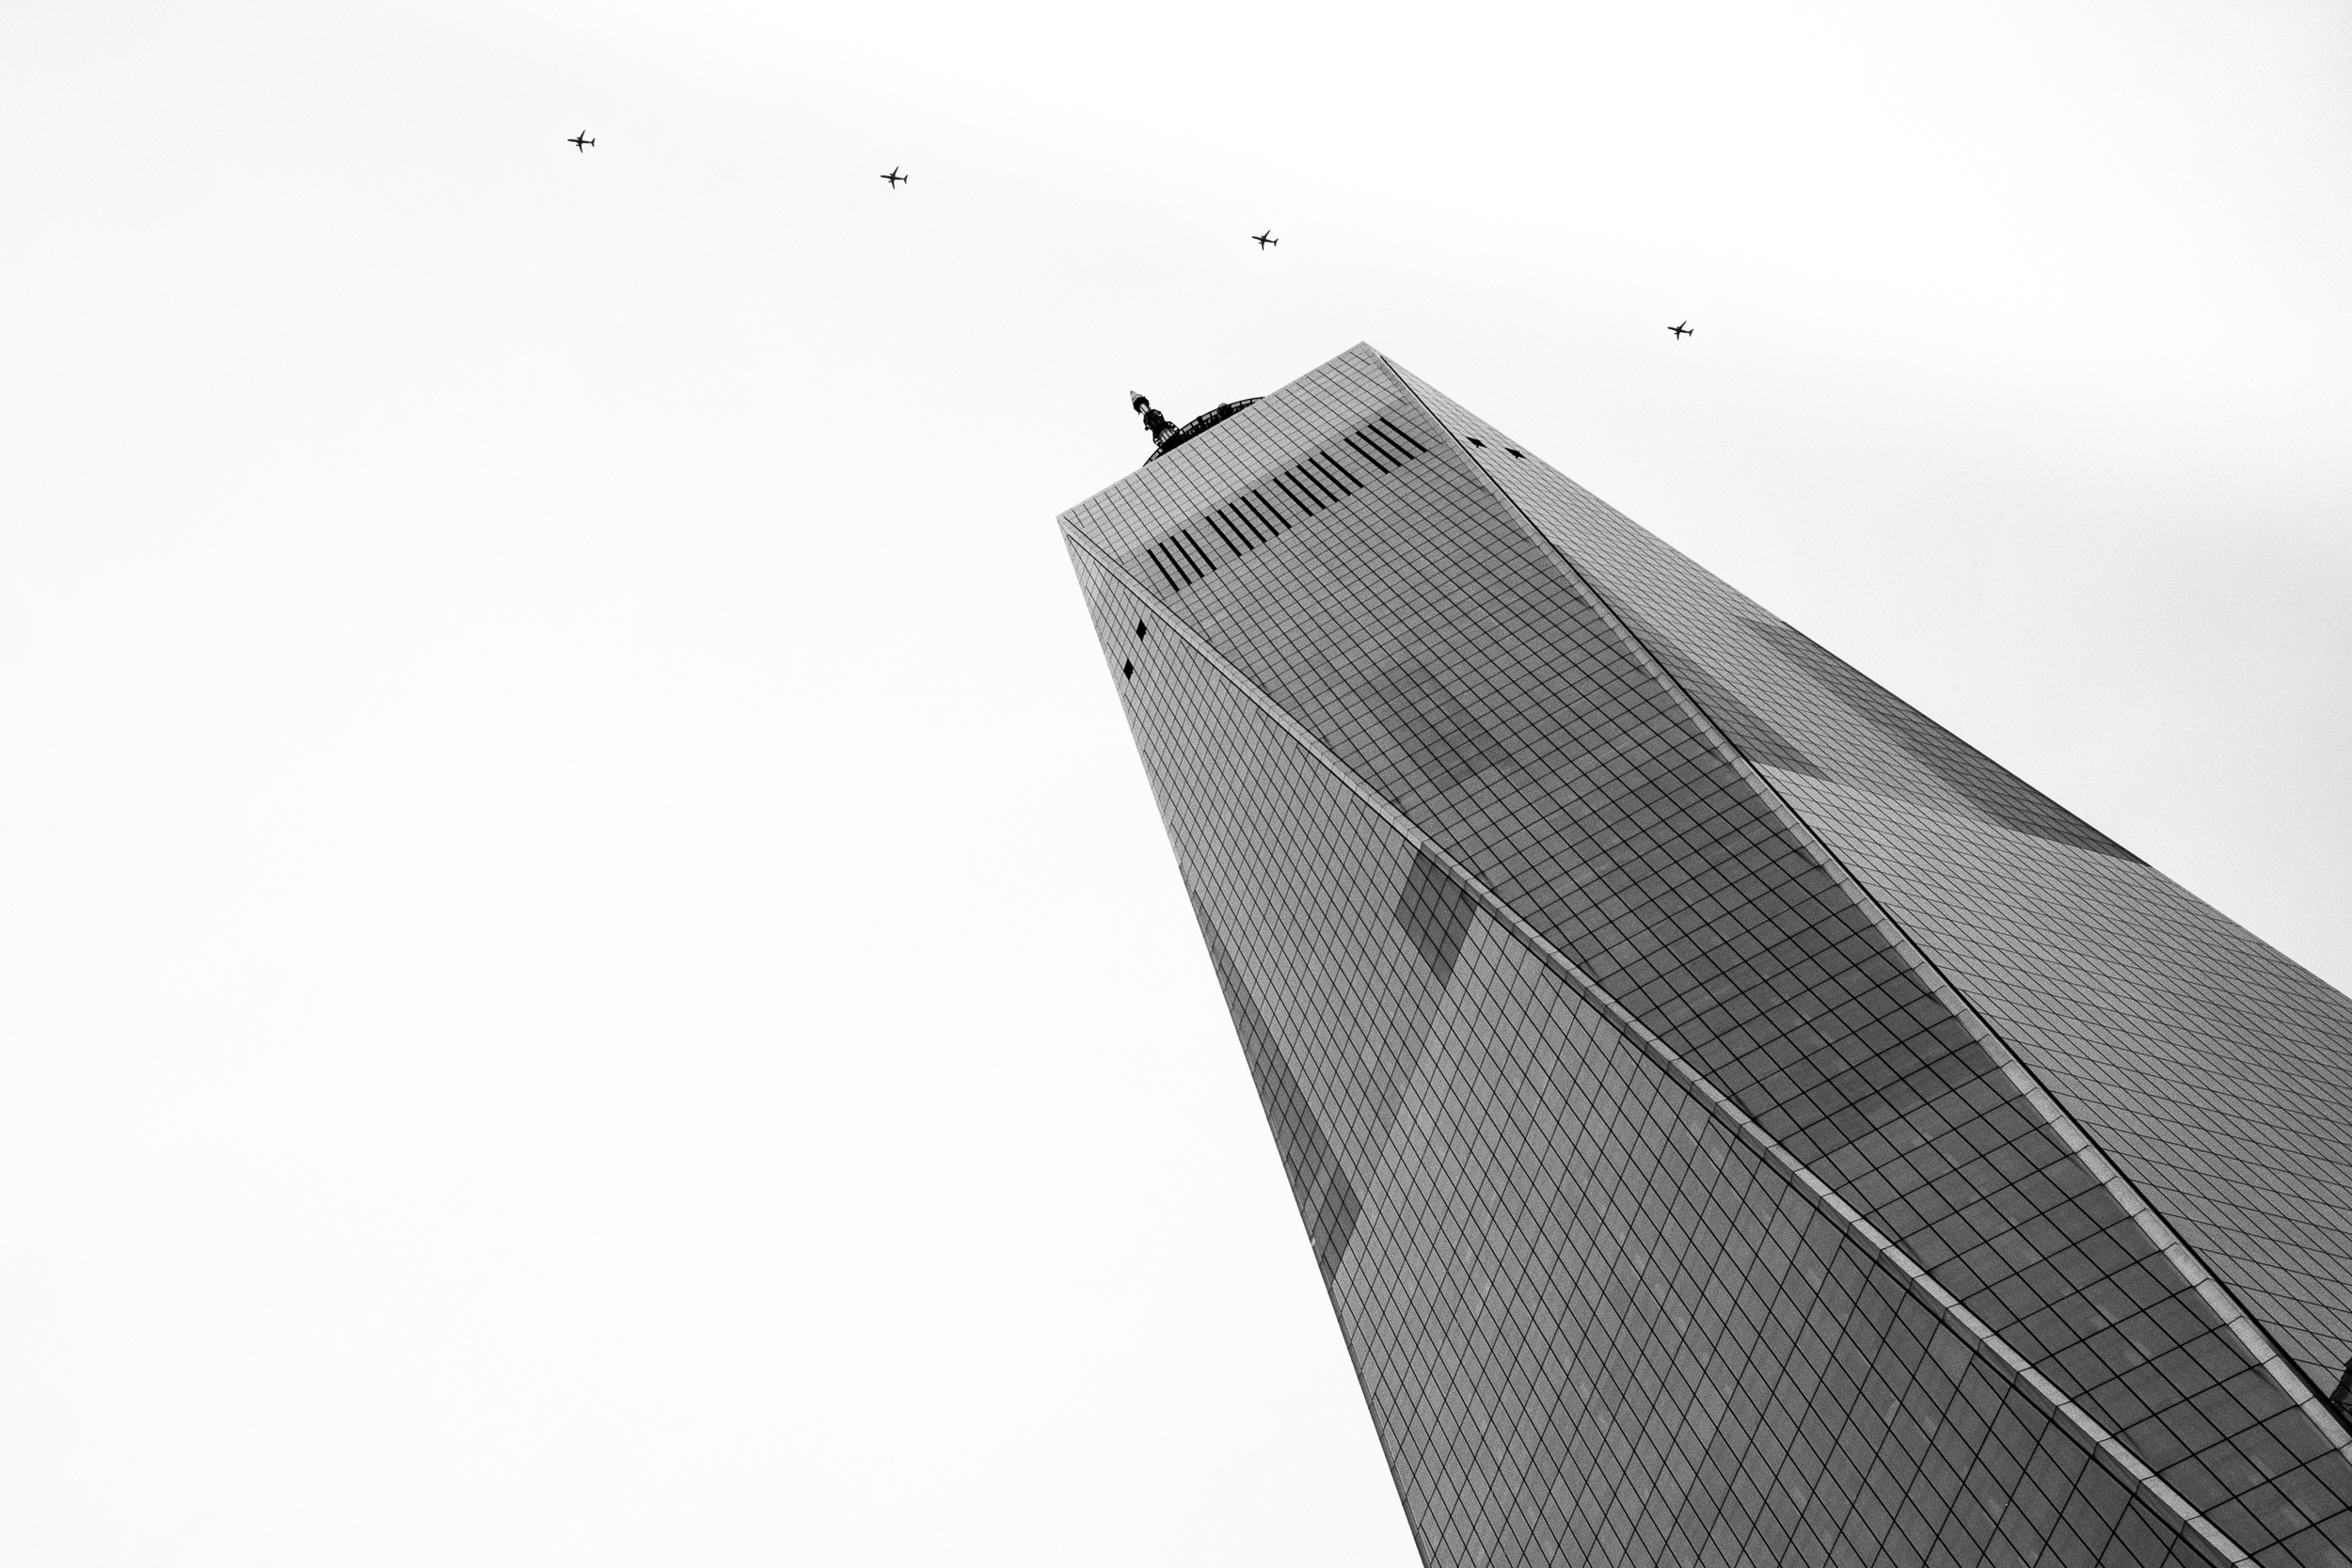 This photograph is very powerful to me. I was standing outside the museum and noticed a jetliner flying over One World Trade. My mind started racing with thoughts.... anywhere else in the world, seeing a plane fly over a building is so routine, that it hardly registers. But here, it seemed raw. This is a view similar to the one thousands saw on 9/11 - but with a very different outcome. I took four images of the plane's track over New York City and combined them in this composite.